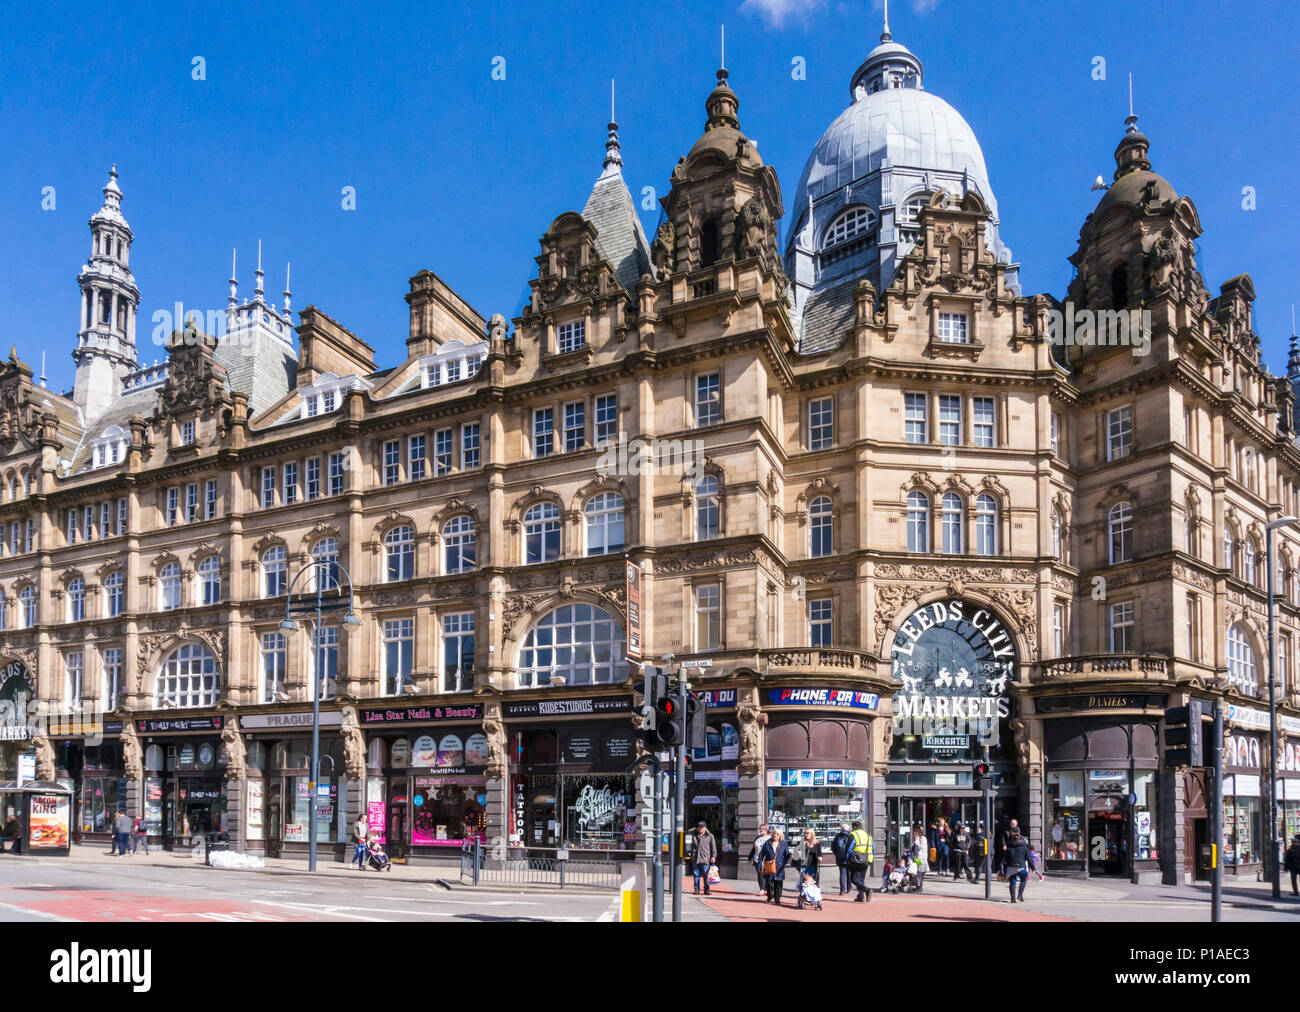 yorkshire england leeds yorkshire england leeds city markets kirkgate market indoor market kirkgate leeds city centre leeds yorkshire uk gb europe - Stock Image